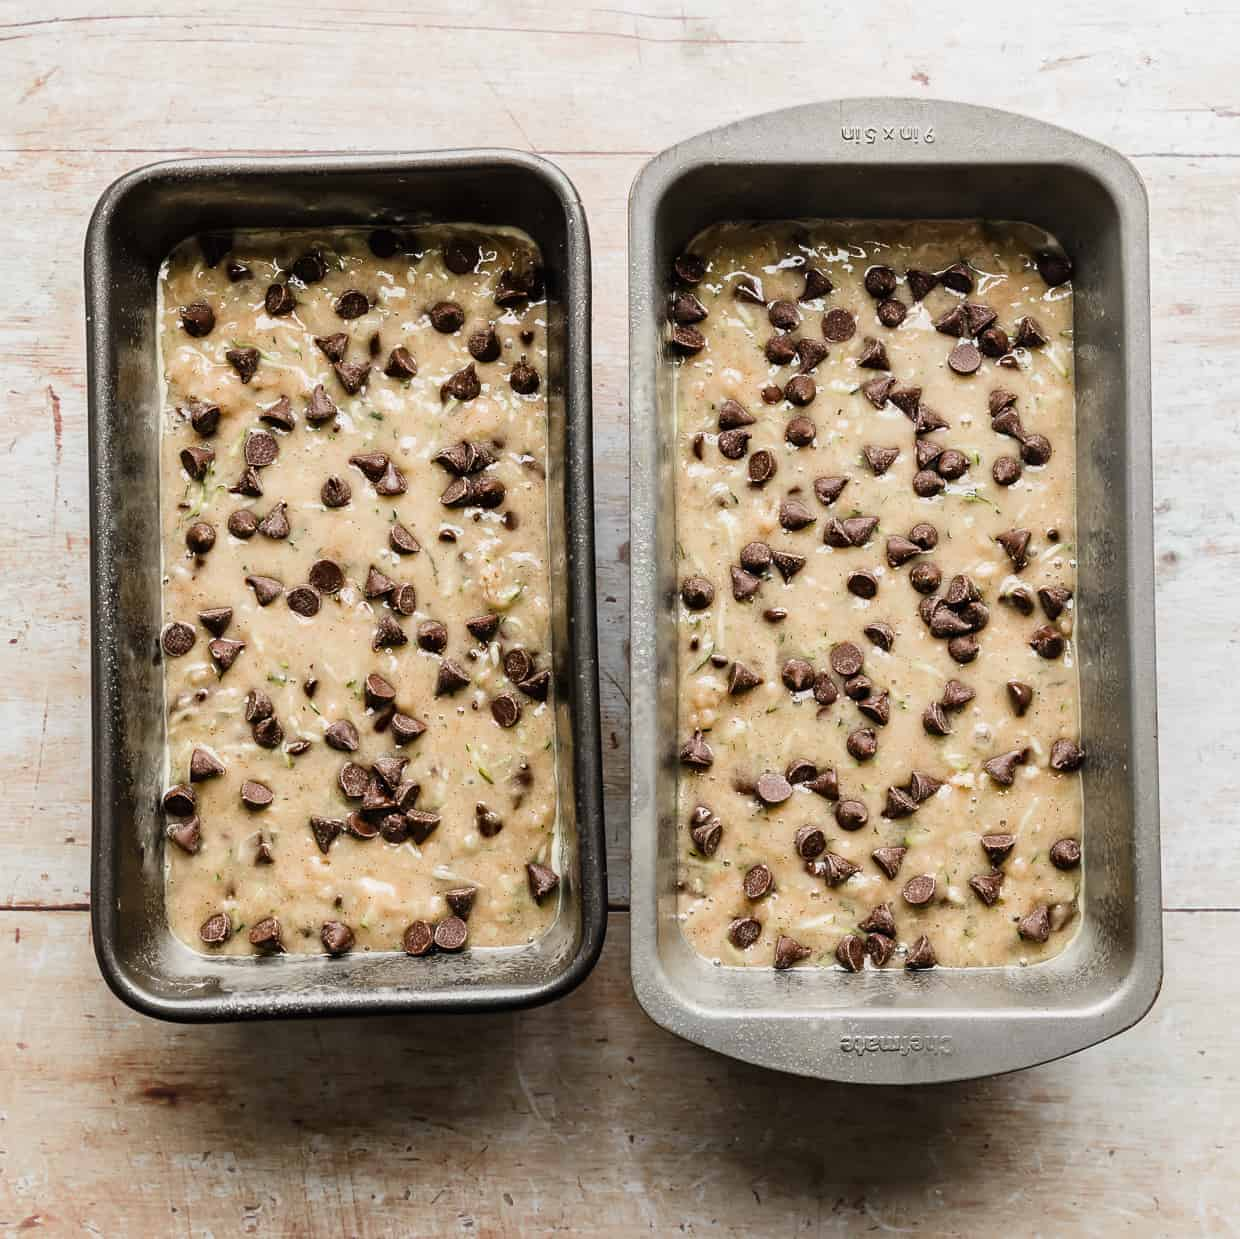 Two bread pans with Chocolate Chip Zucchini Bread batter in each.